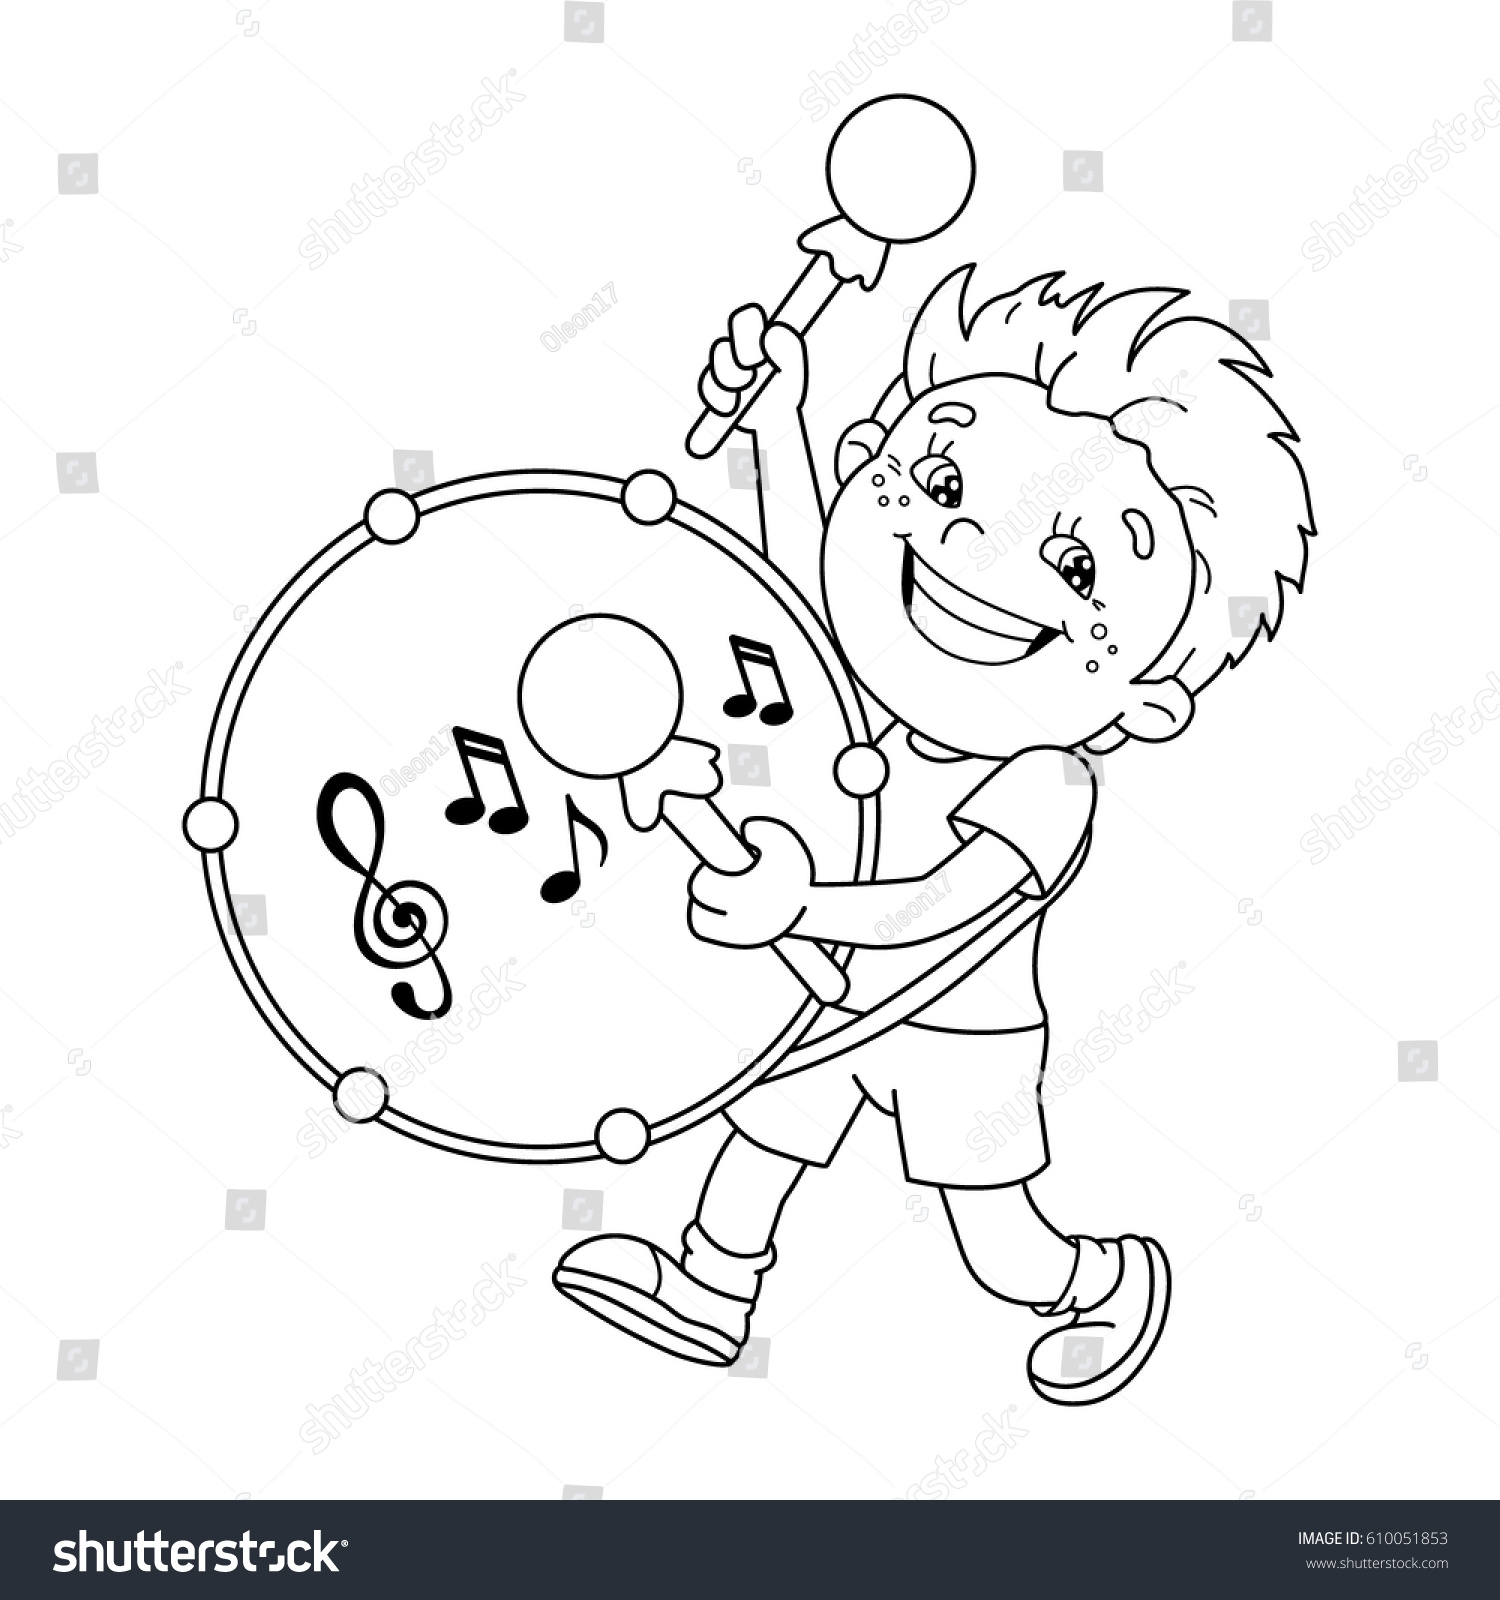 Coloring Page Outline Cartoon Boy Playing Stock Vector 610051853